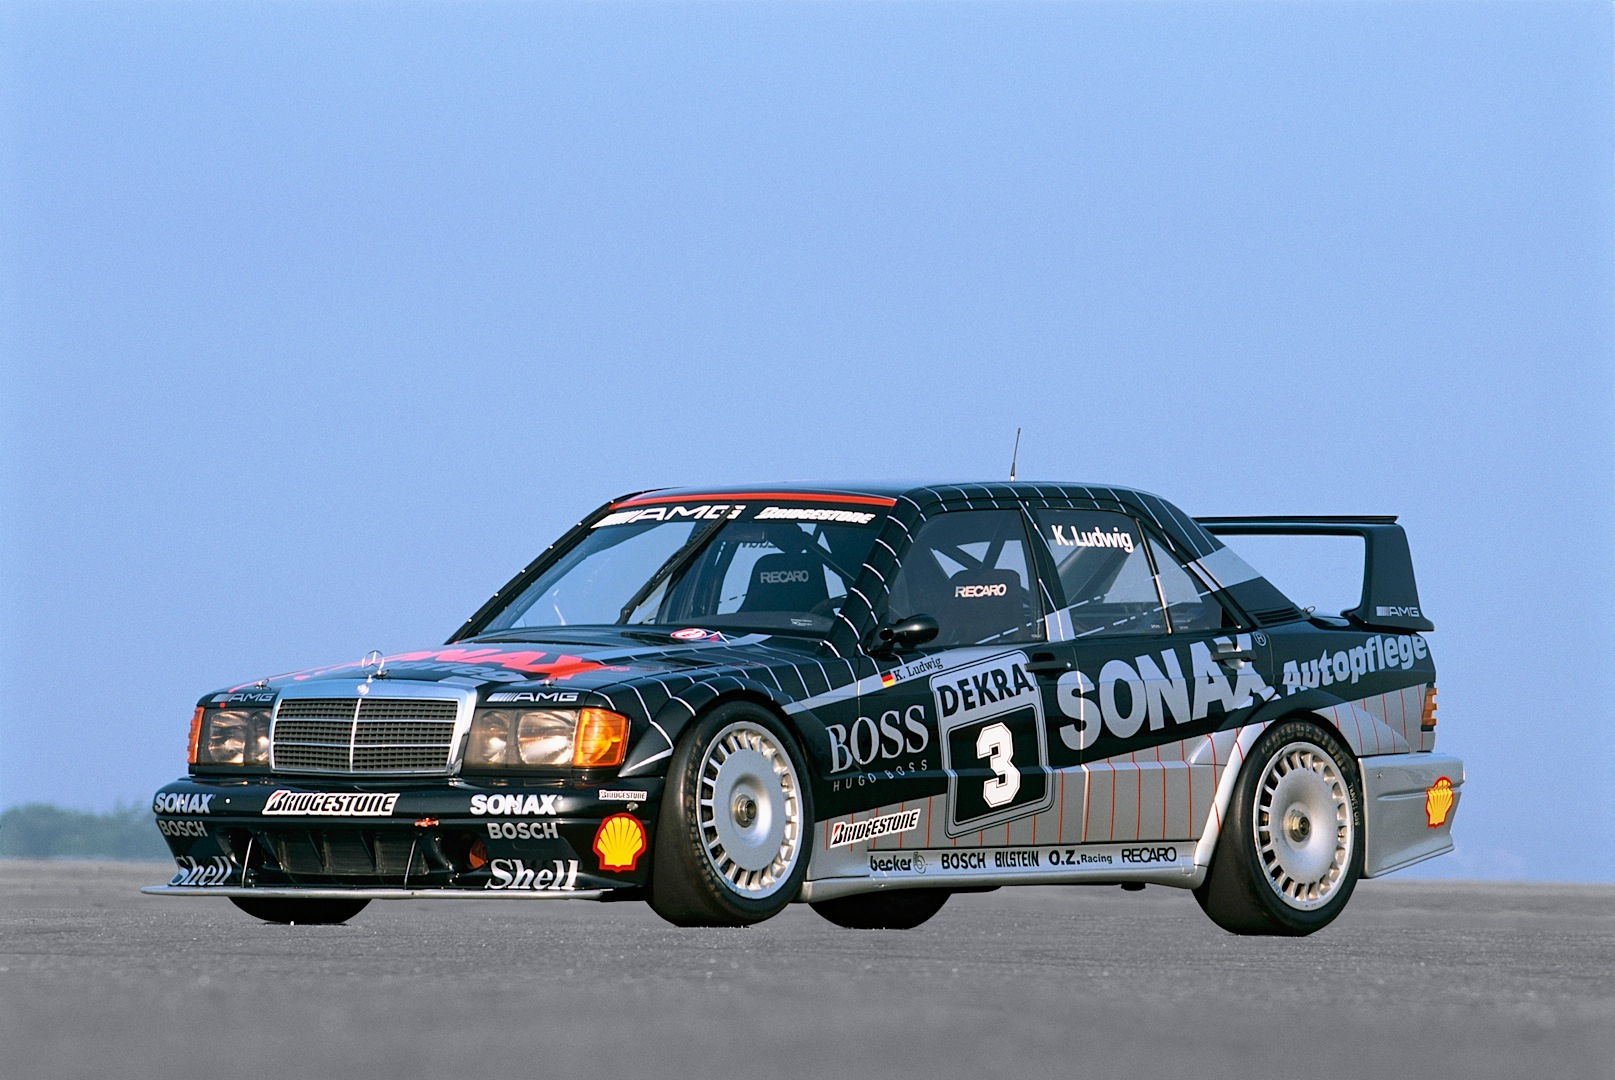 A short history of the mercedes benz c class in dtm for Mercedes benz car history